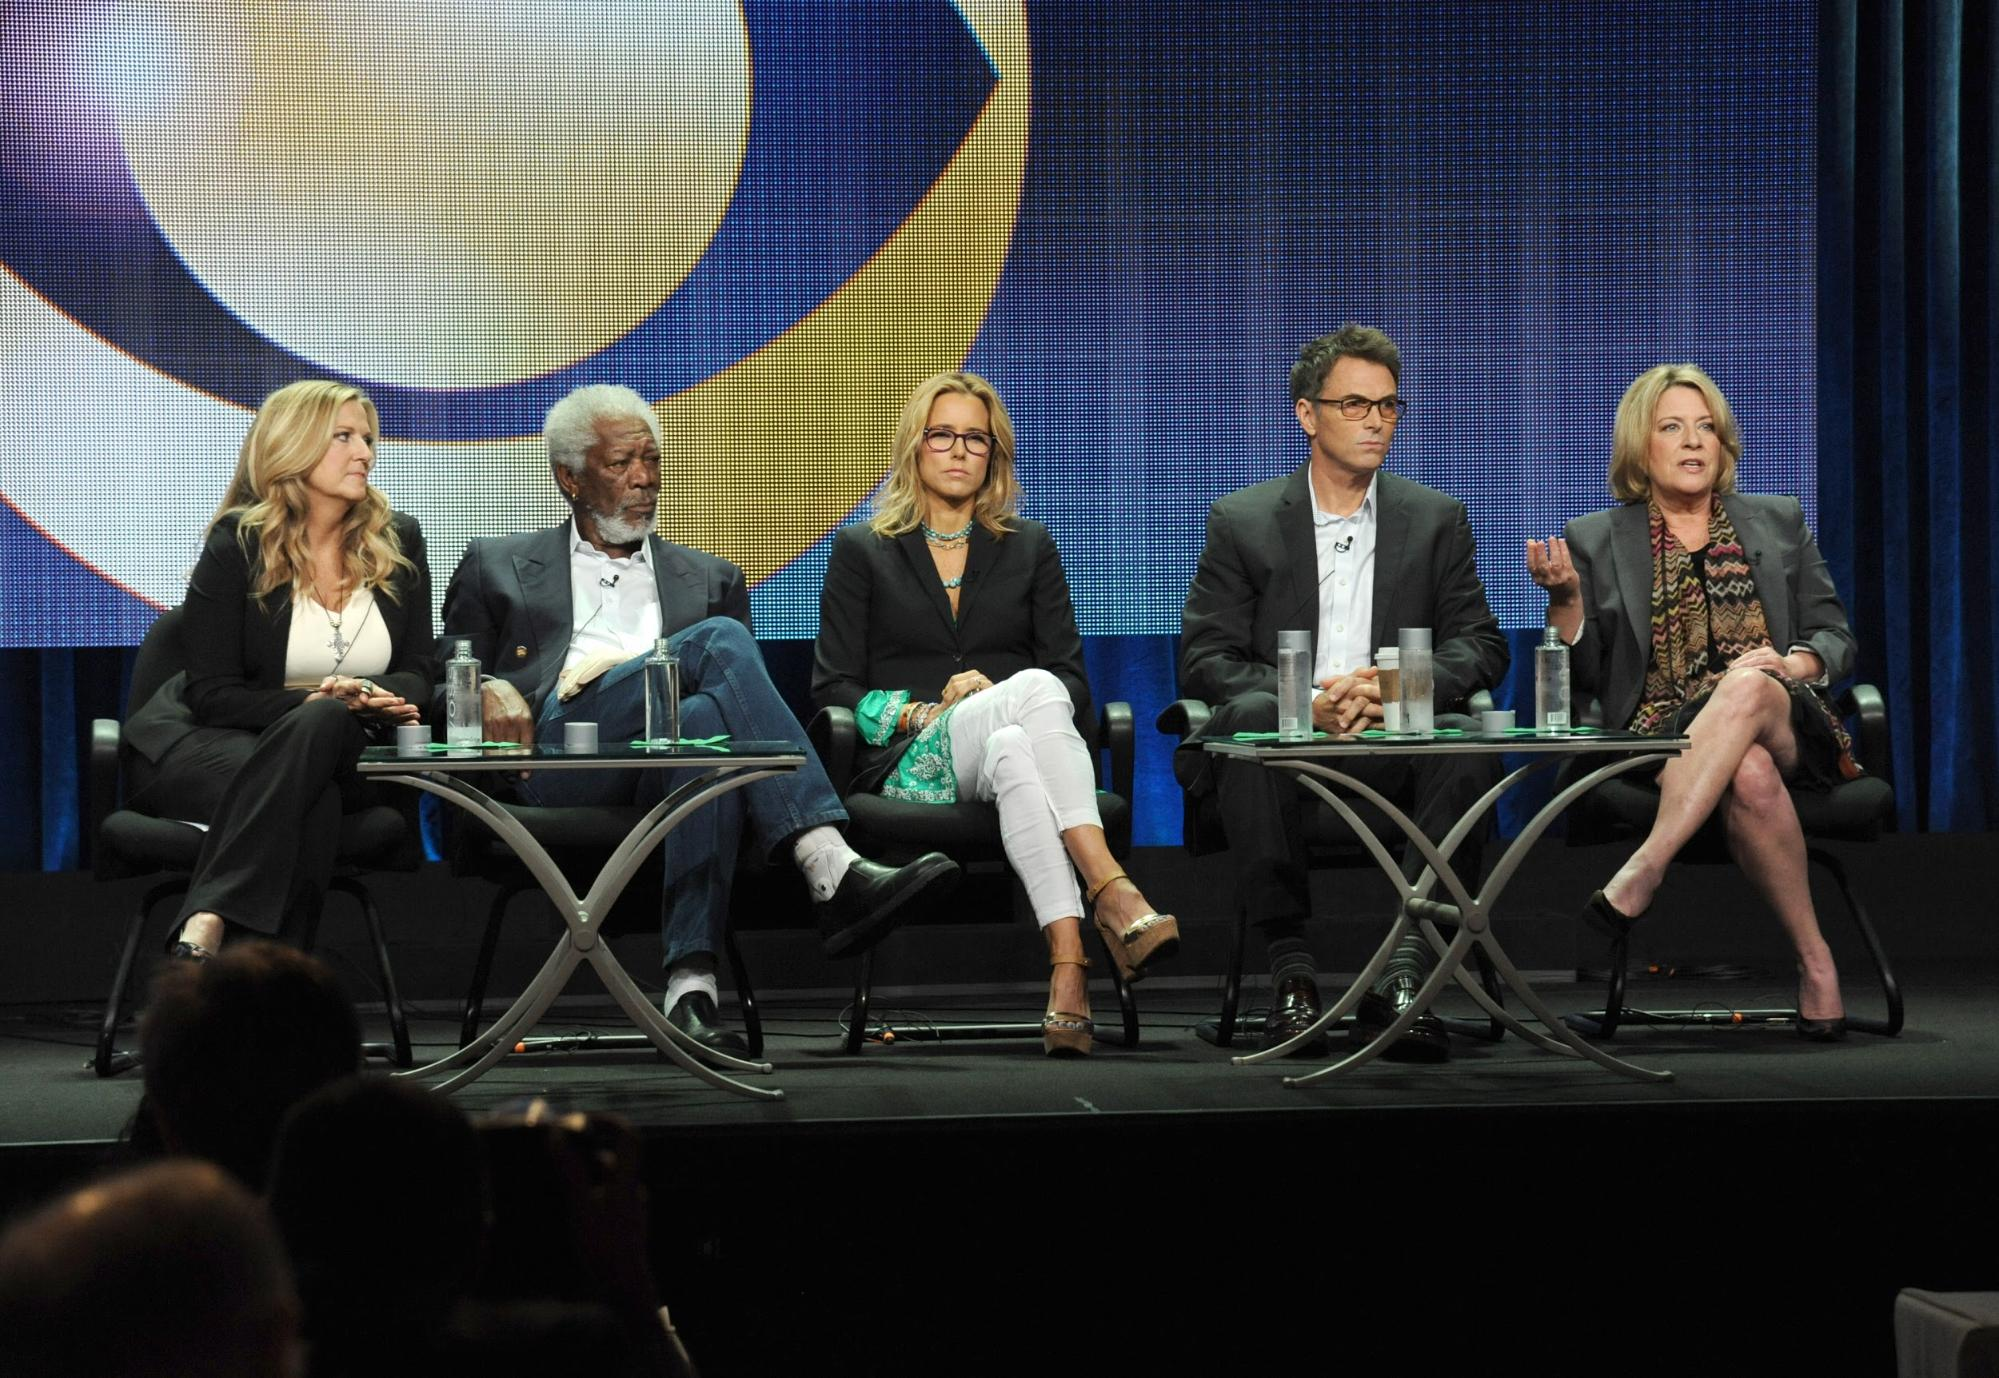 Lori McCreary, Morgan Freeman, Tea Leoni, Tim Daly, Barbara Hall. Beverly Hills, California.